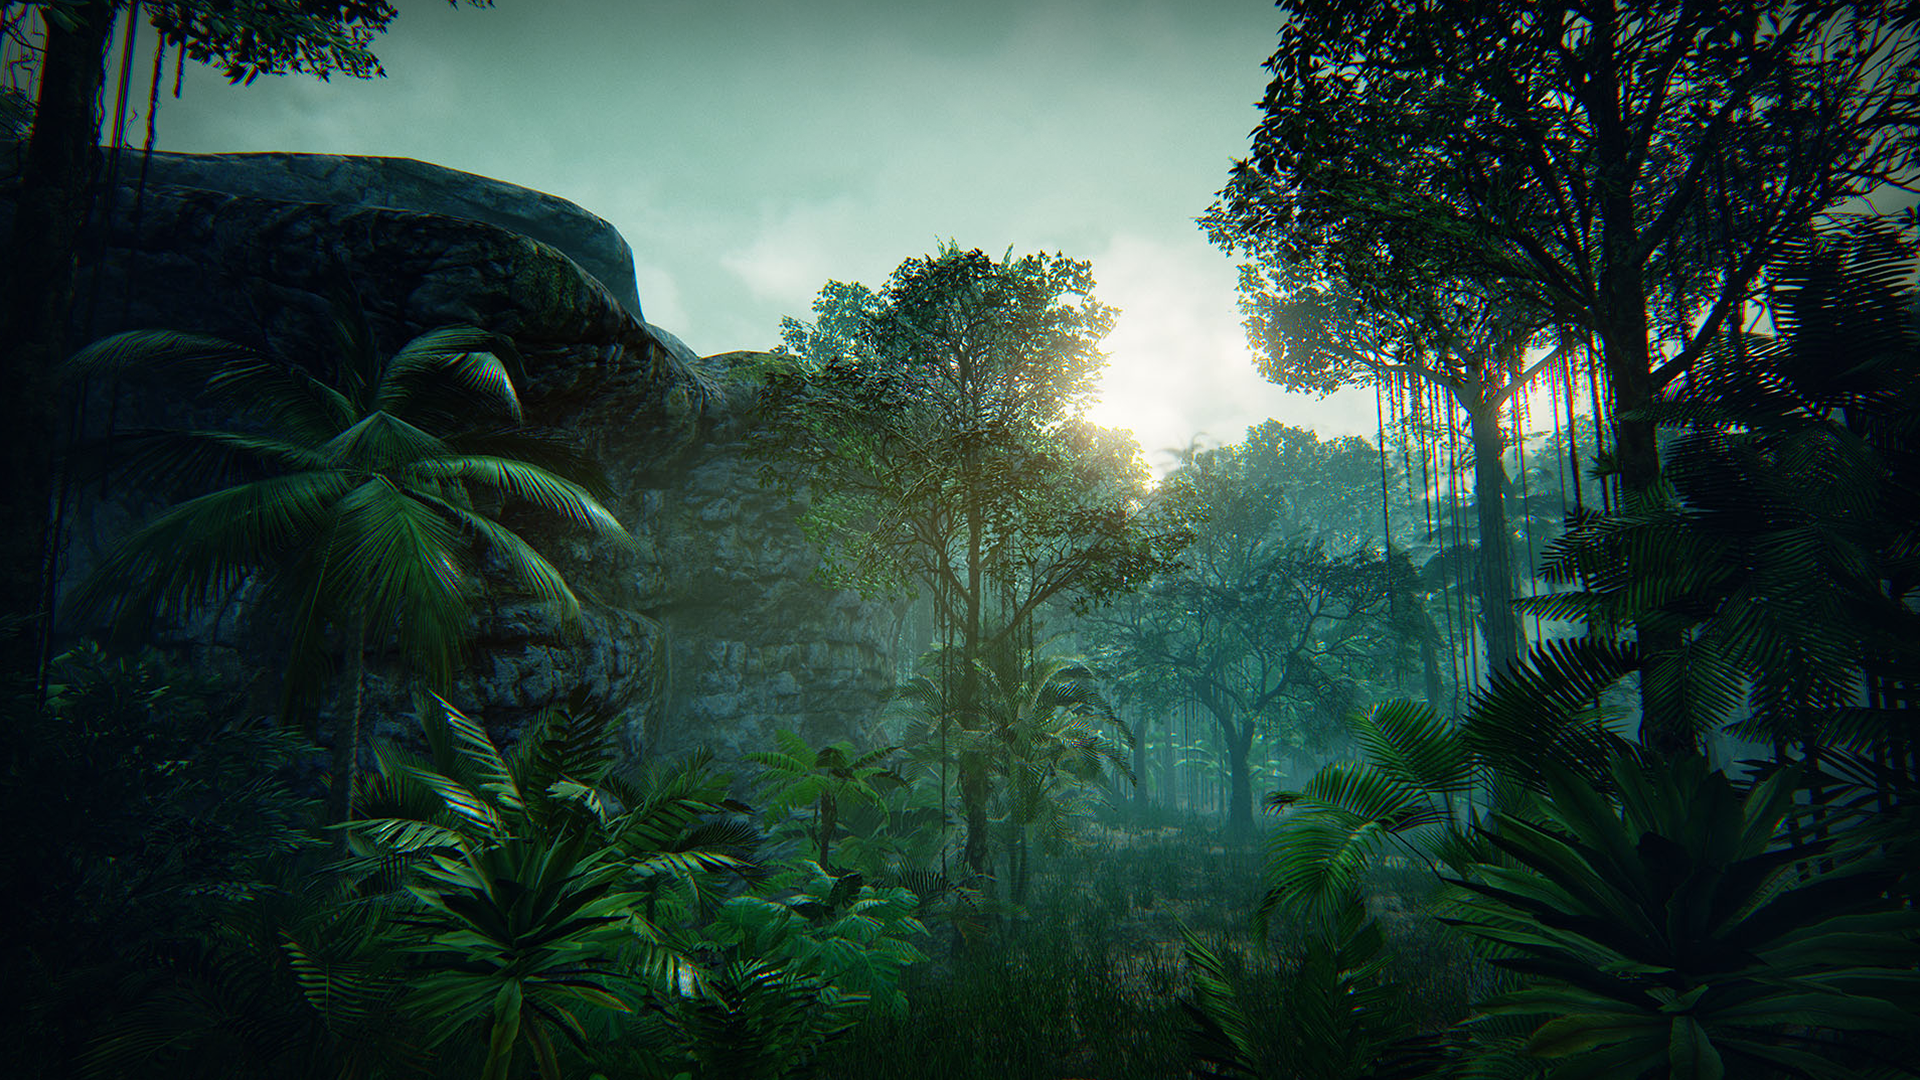 Tropical Forest by Manufactura K4 in Environments - UE4 ...